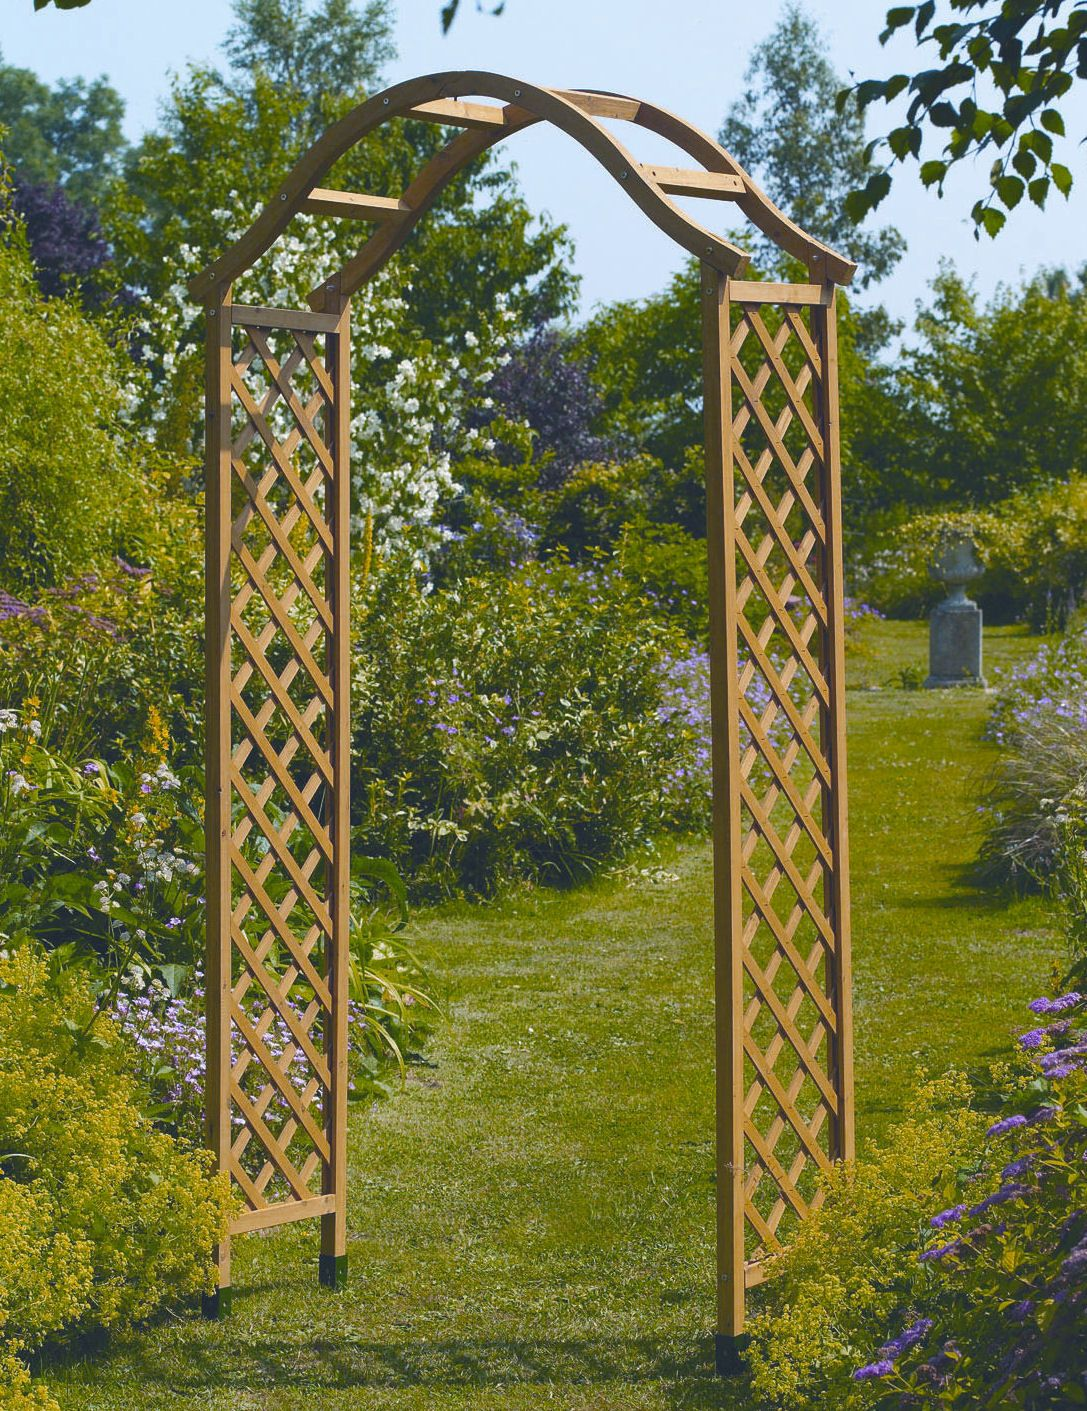 Gardman Wooden Garden Arch - Tan / Natural Wood